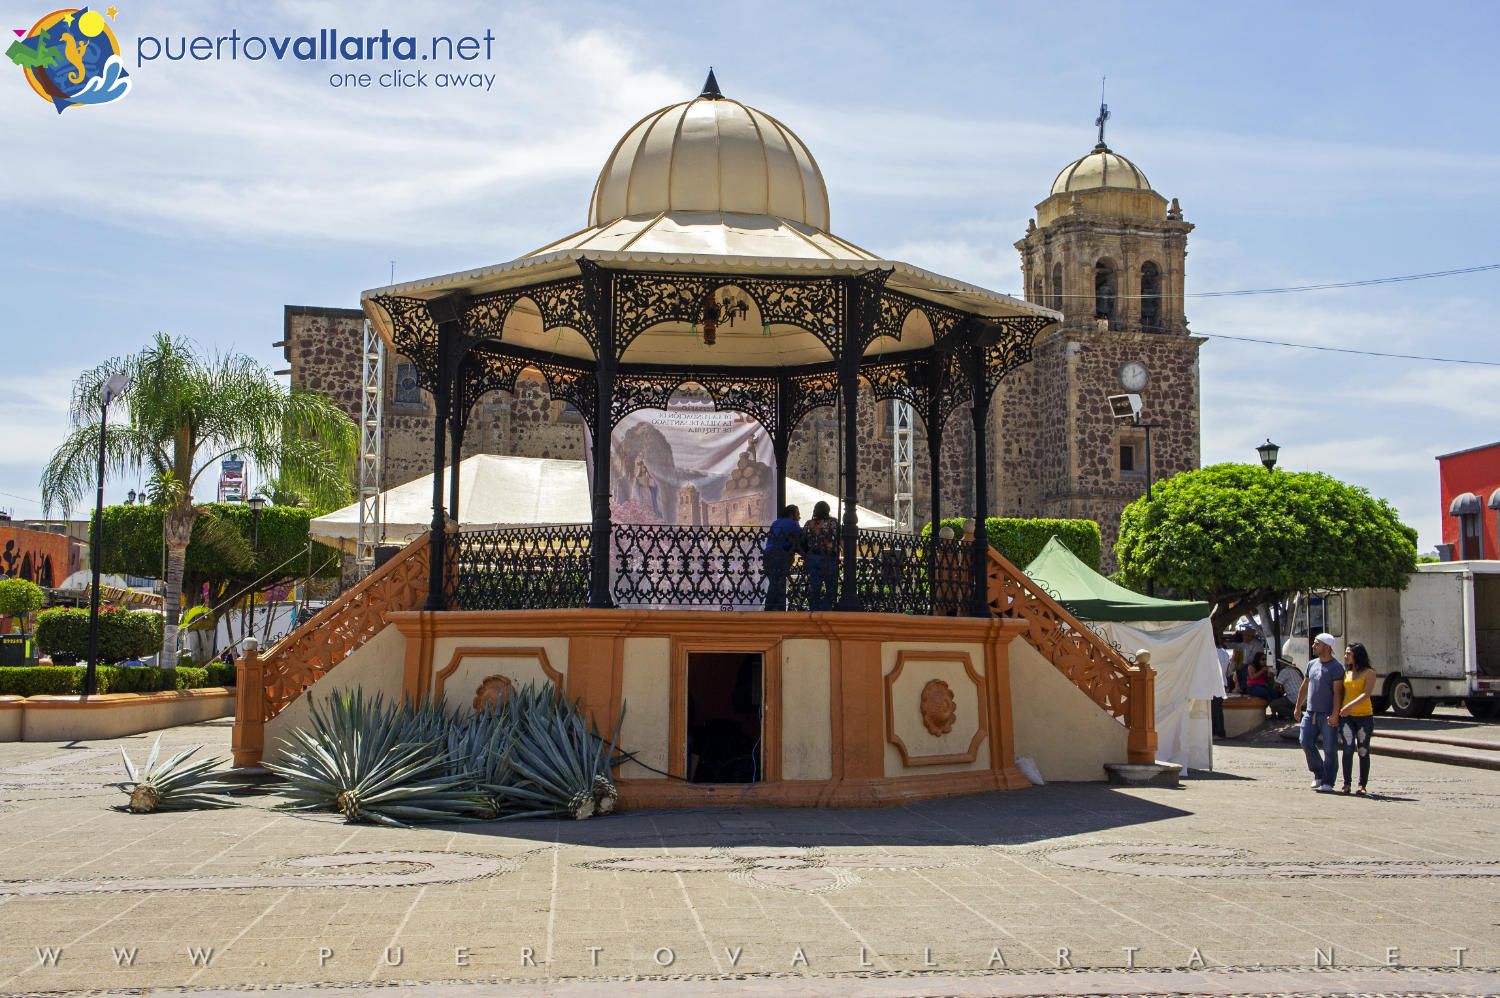 Kiosk on the Main Square of Tequila